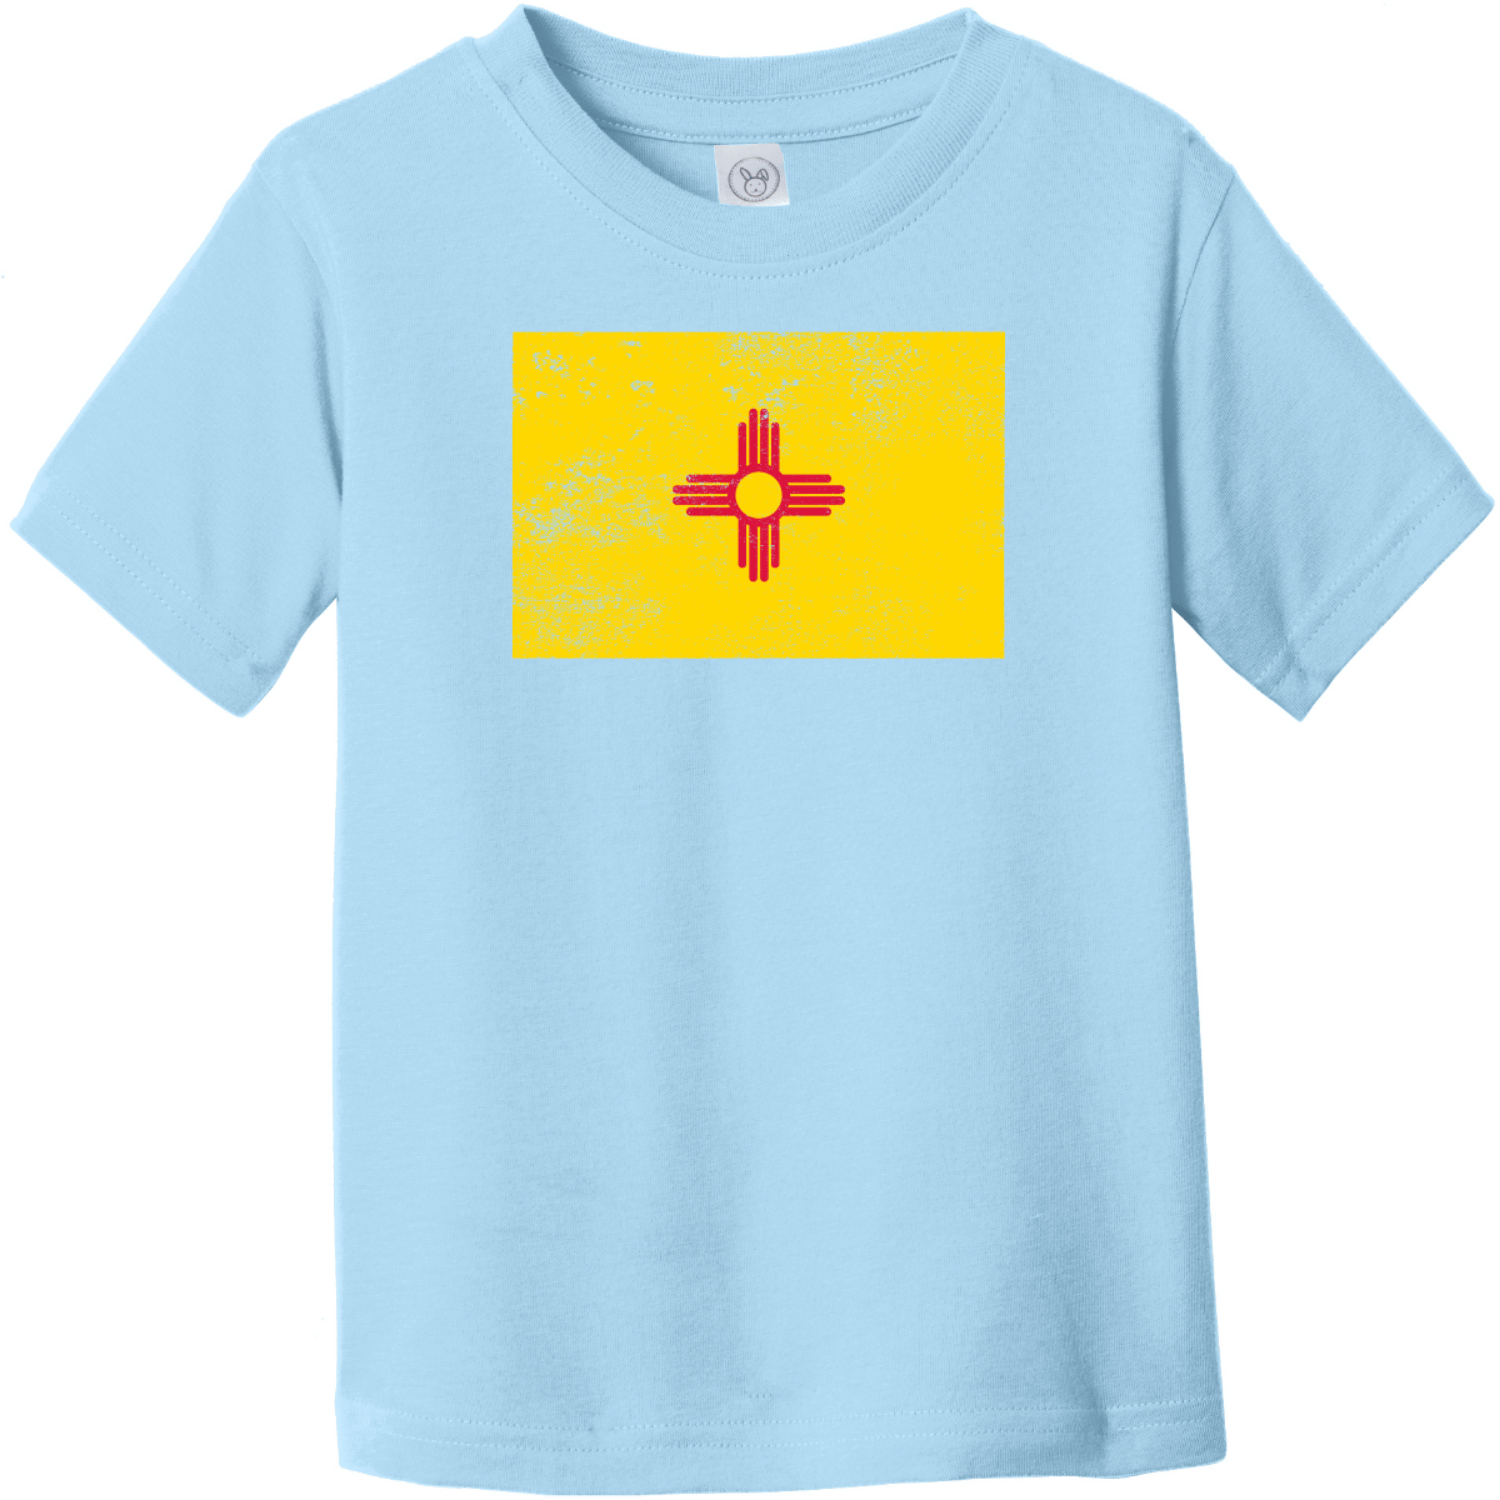 New Mexico Vintage Toddler T-Shirt Light Blue Rabbit Skins Toddler Fine Jersey Tee RS3321